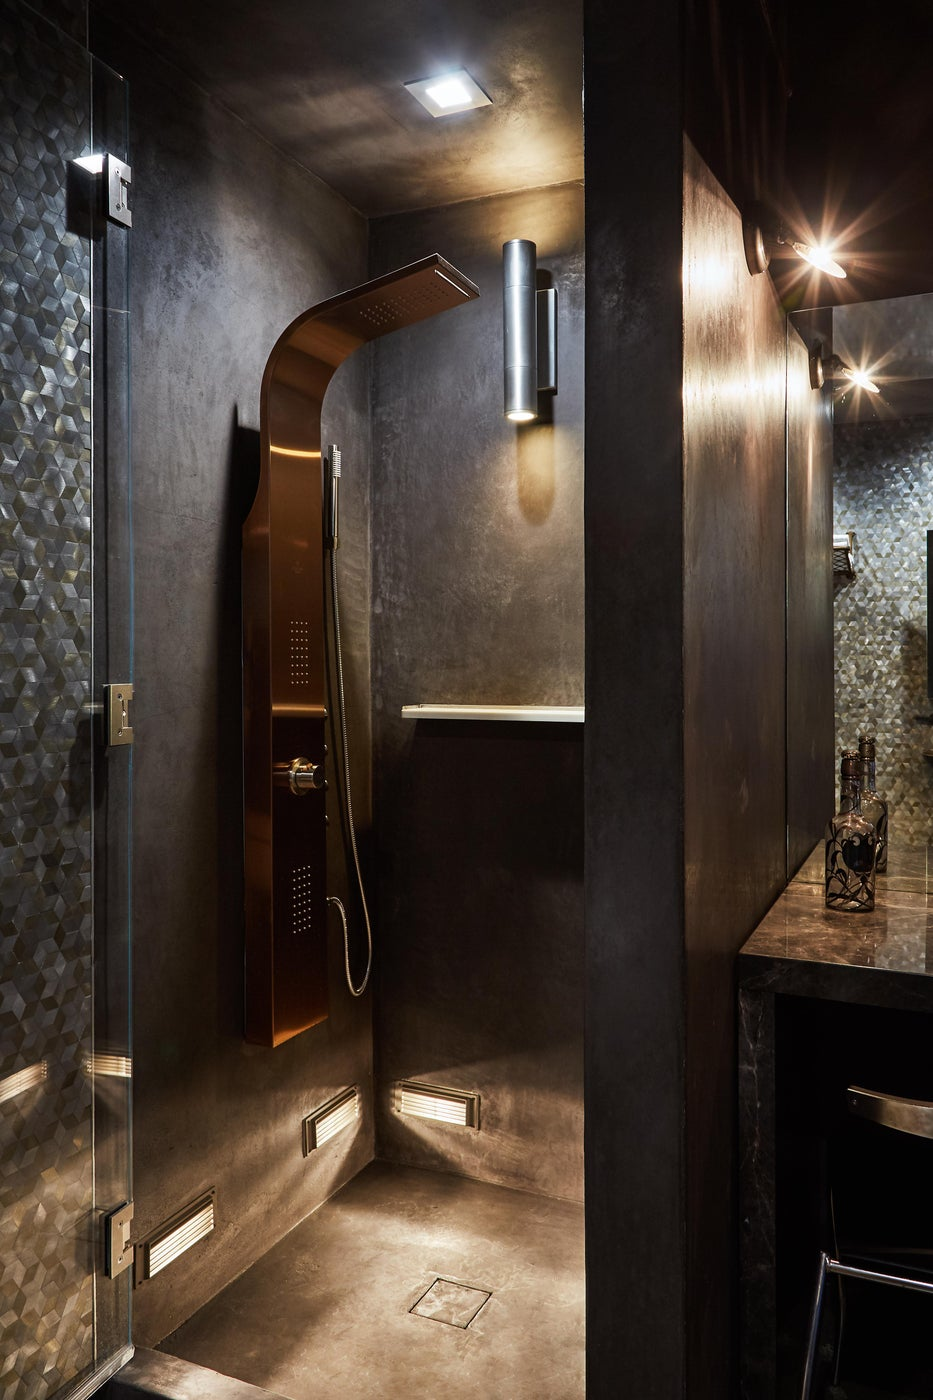 Plastered shower walls, marble vanity, & curved rainhead shower spa system